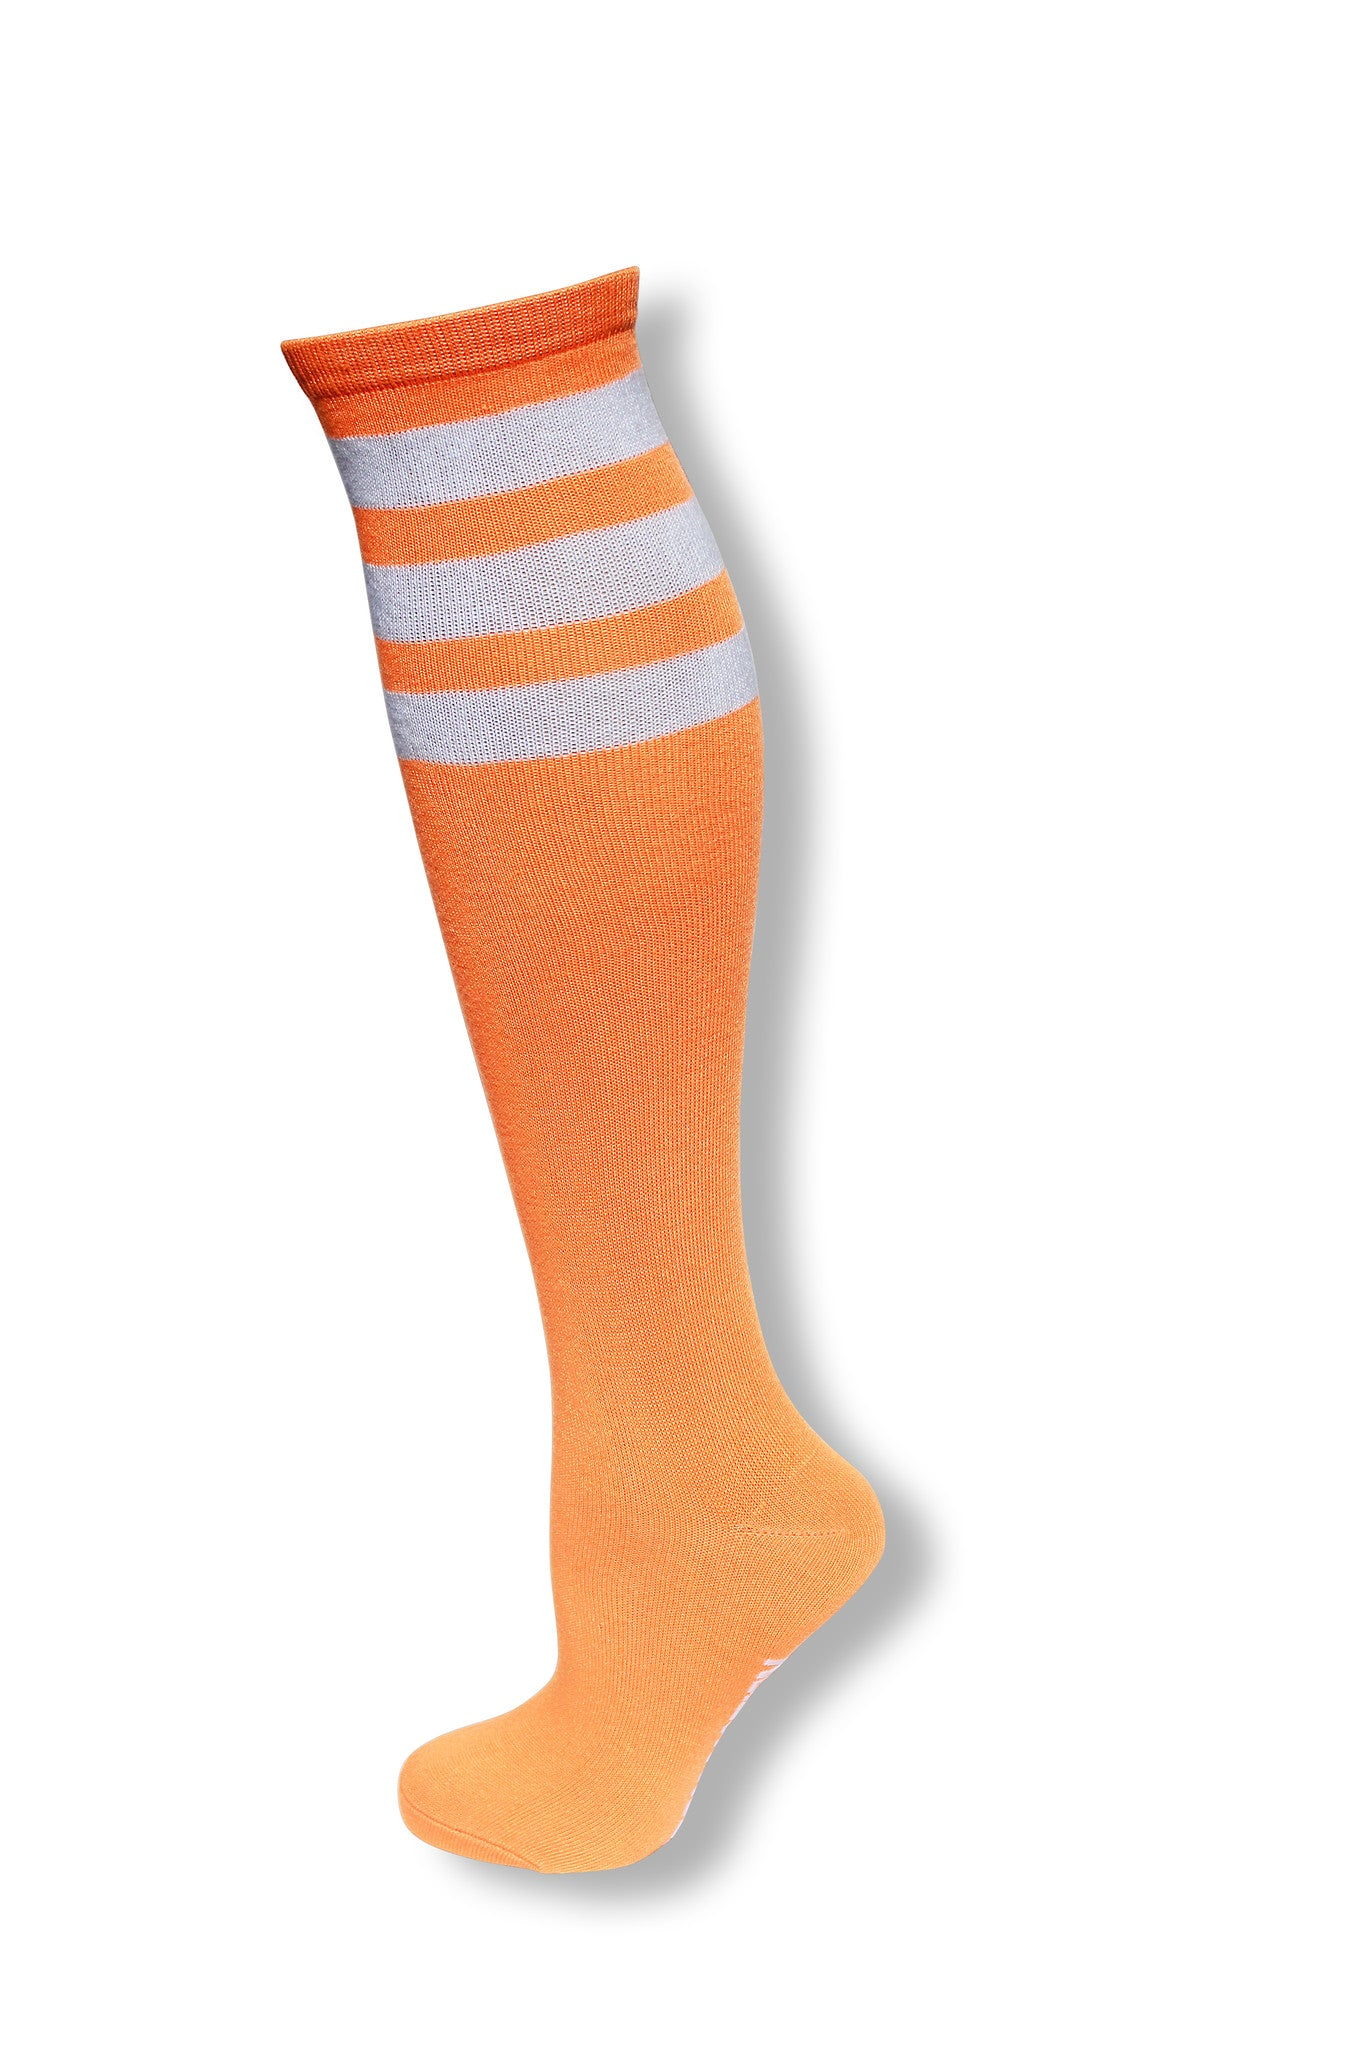 e064d5c1195 Neon Orange with White Stripes Knee High Sock – Neon Nation